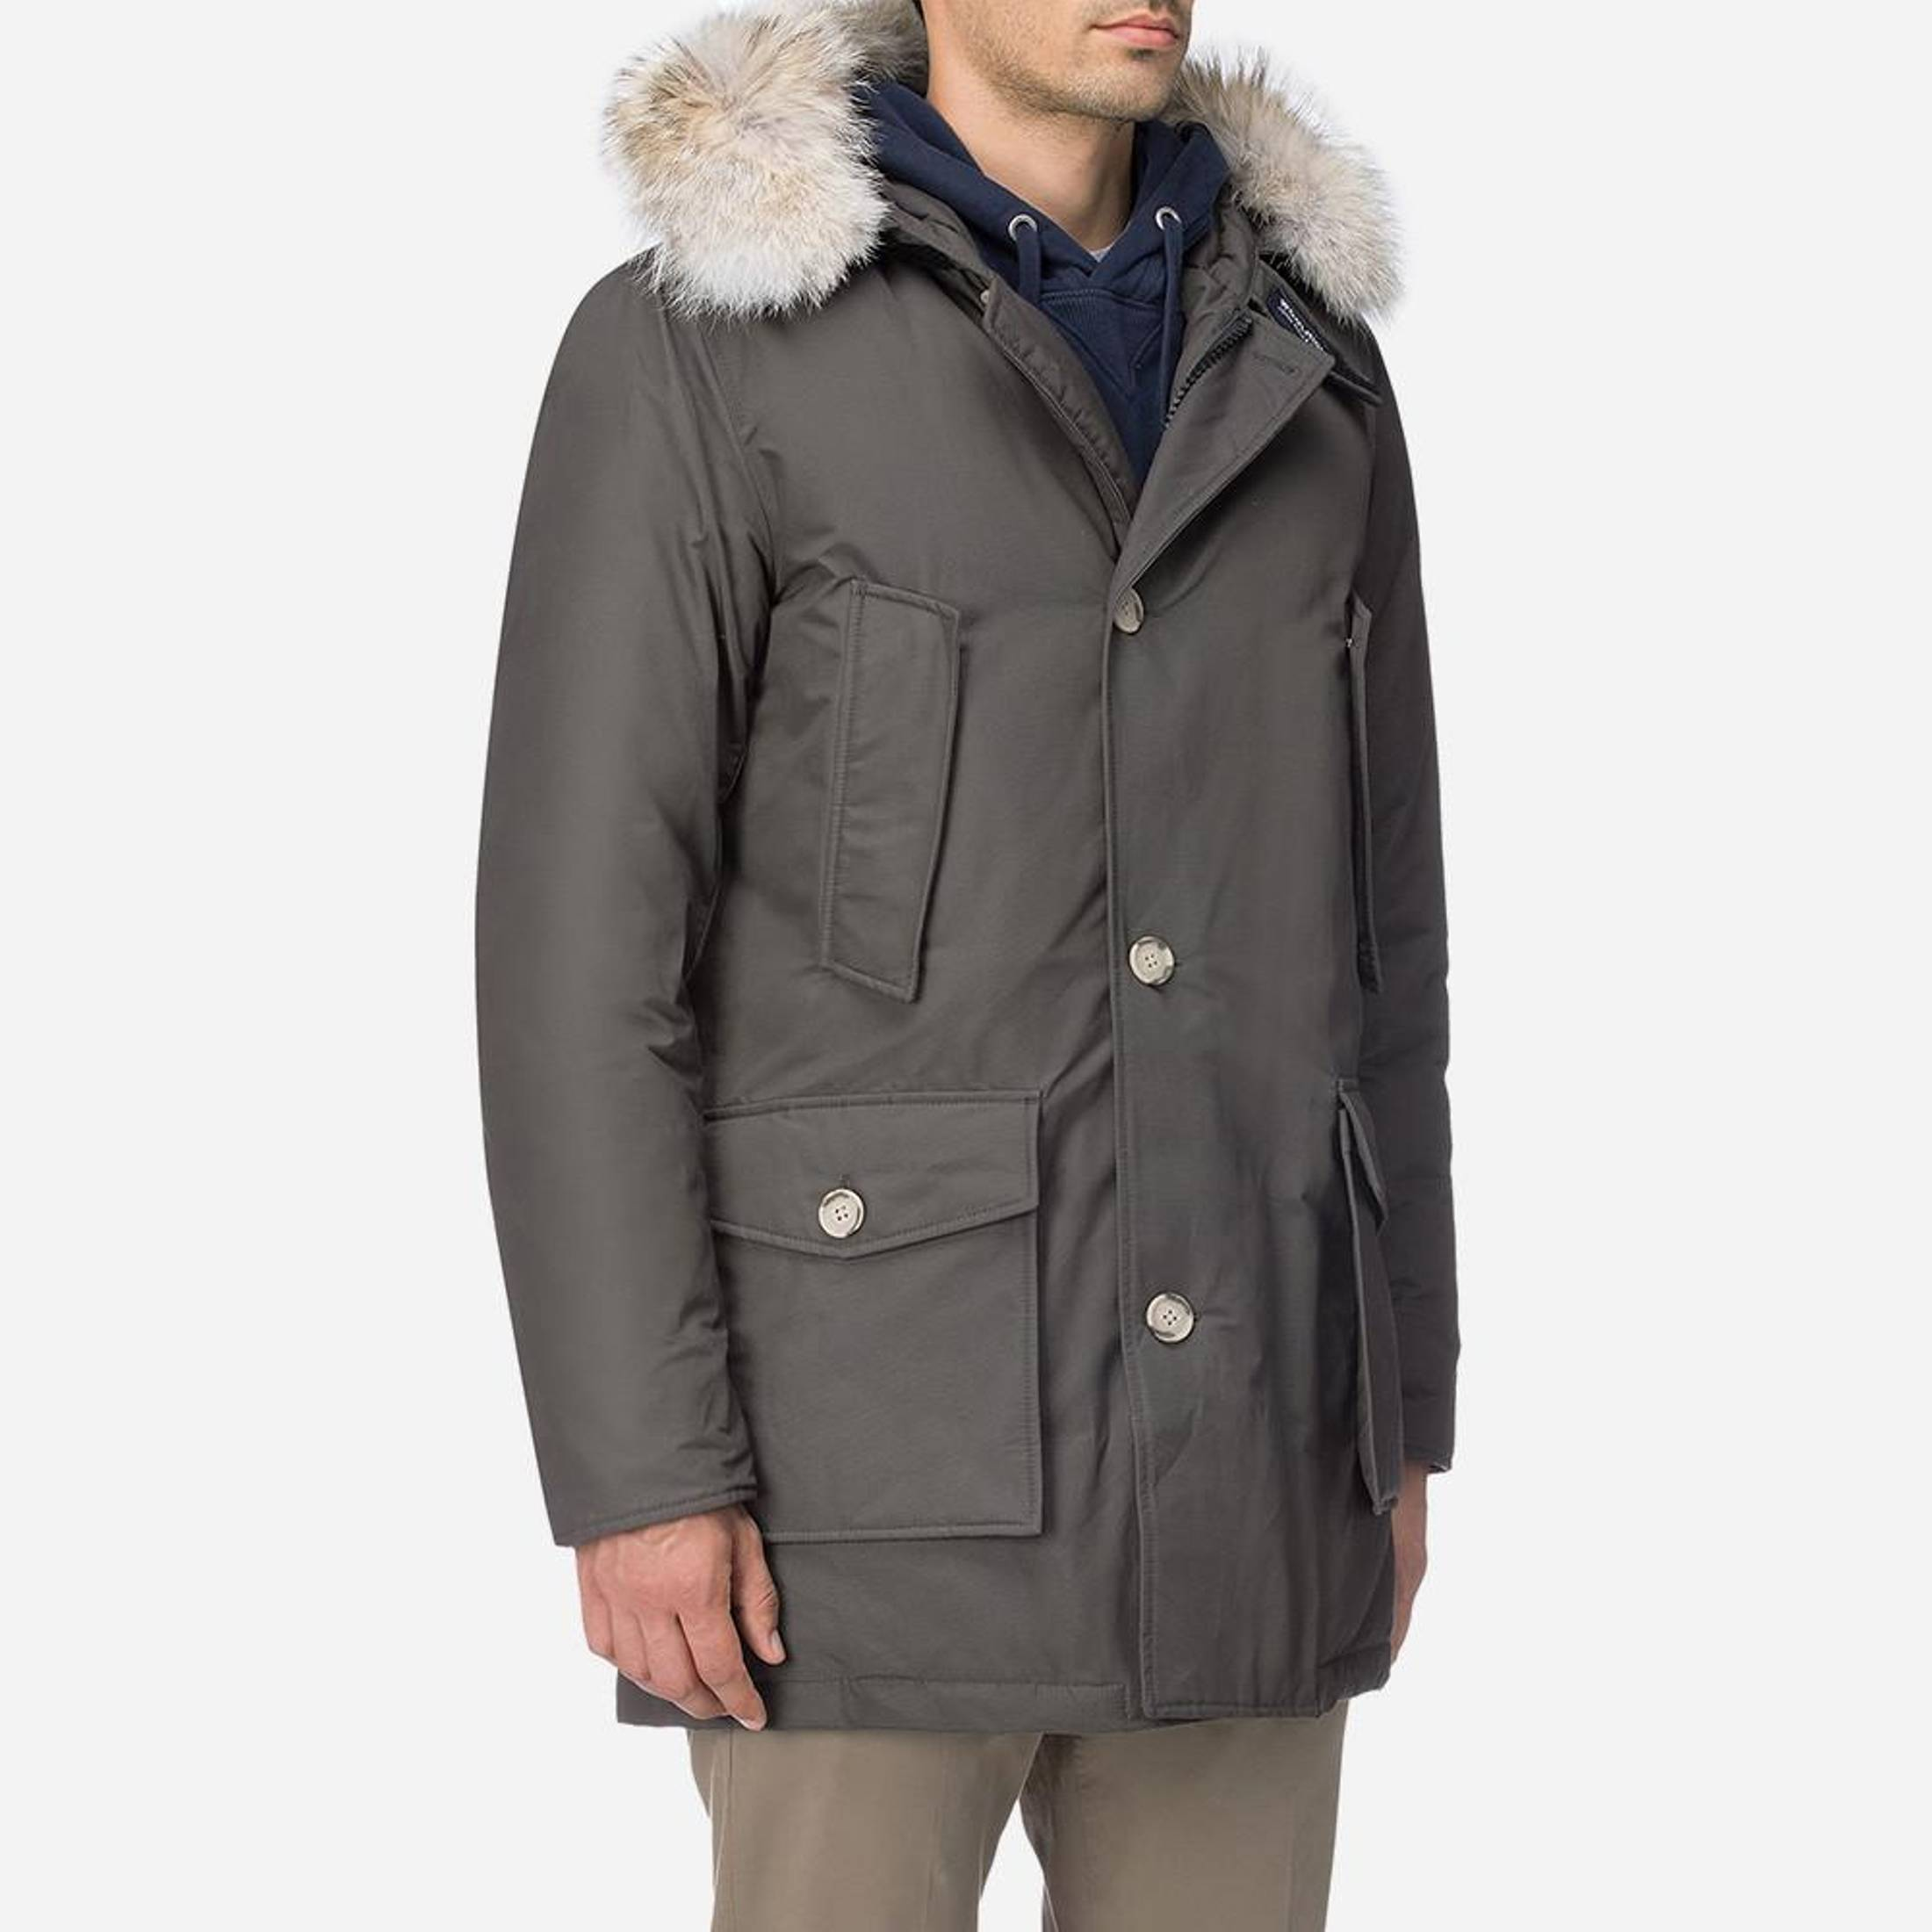 Woolrich Arctic Parka in military green in L